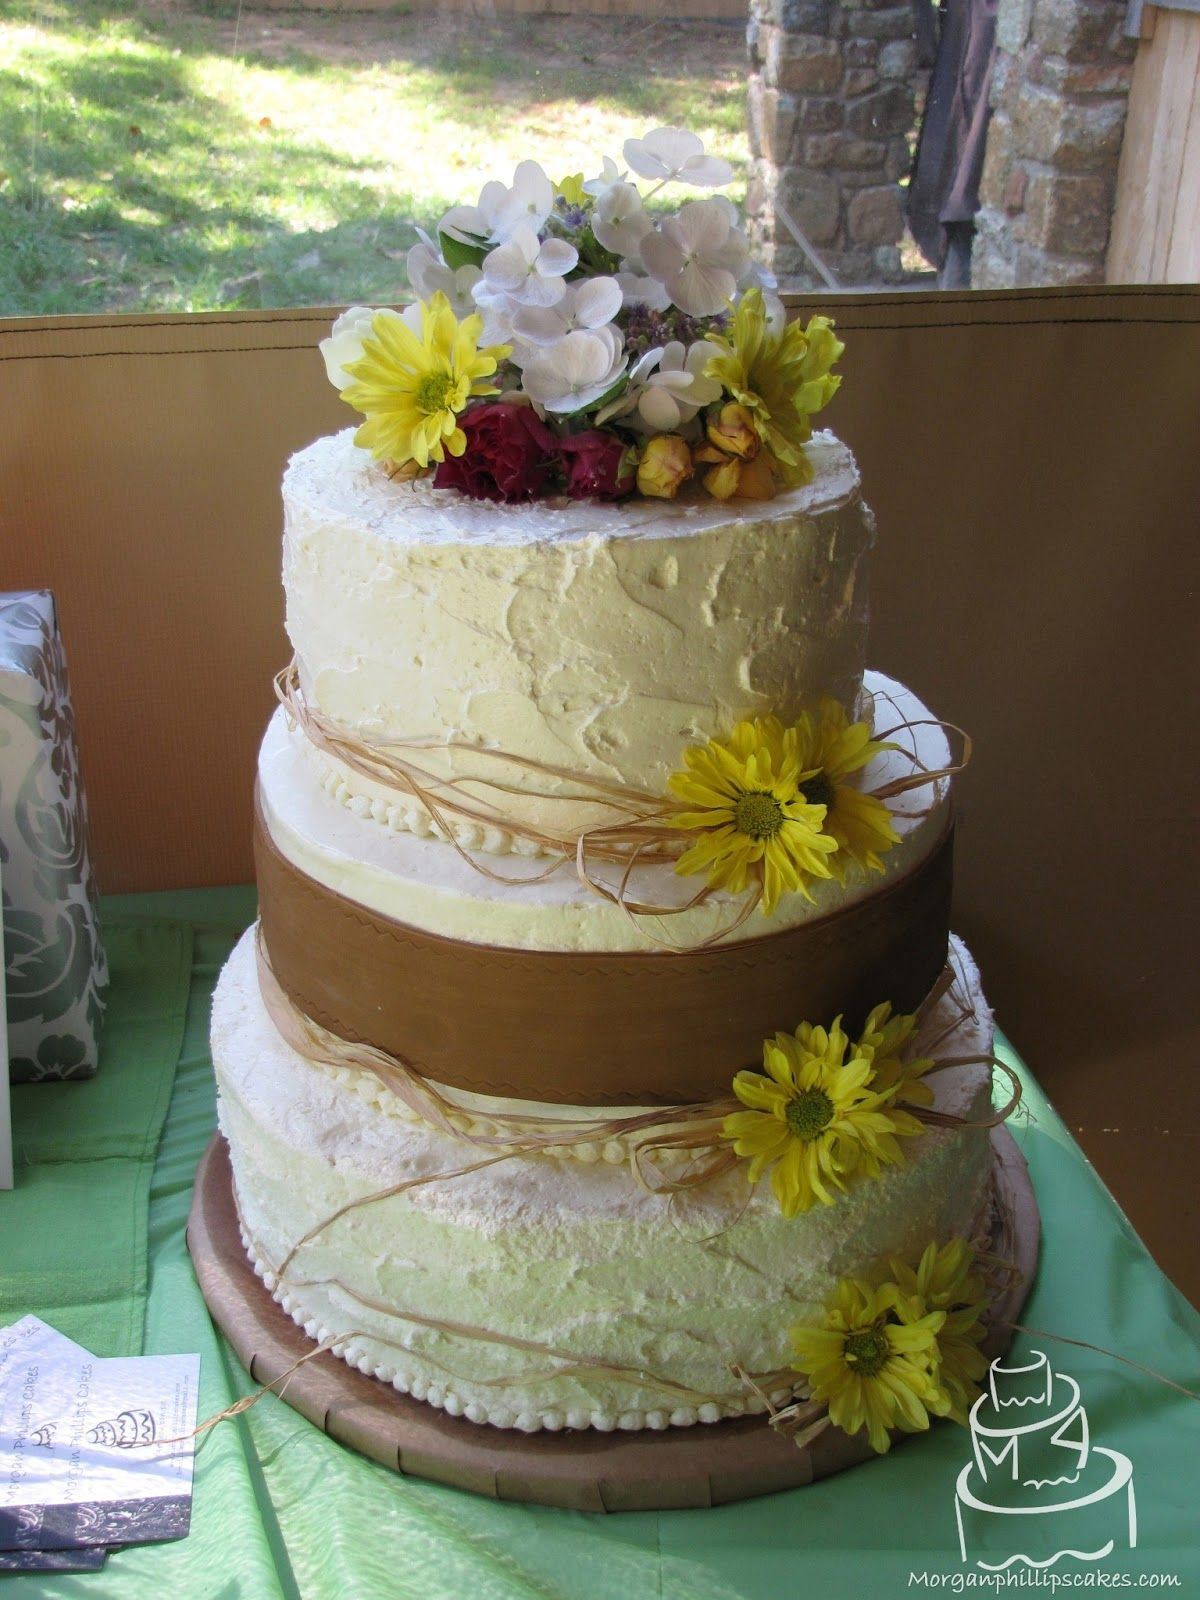 Country wedding cakes pictures - Country Wedding Cakes